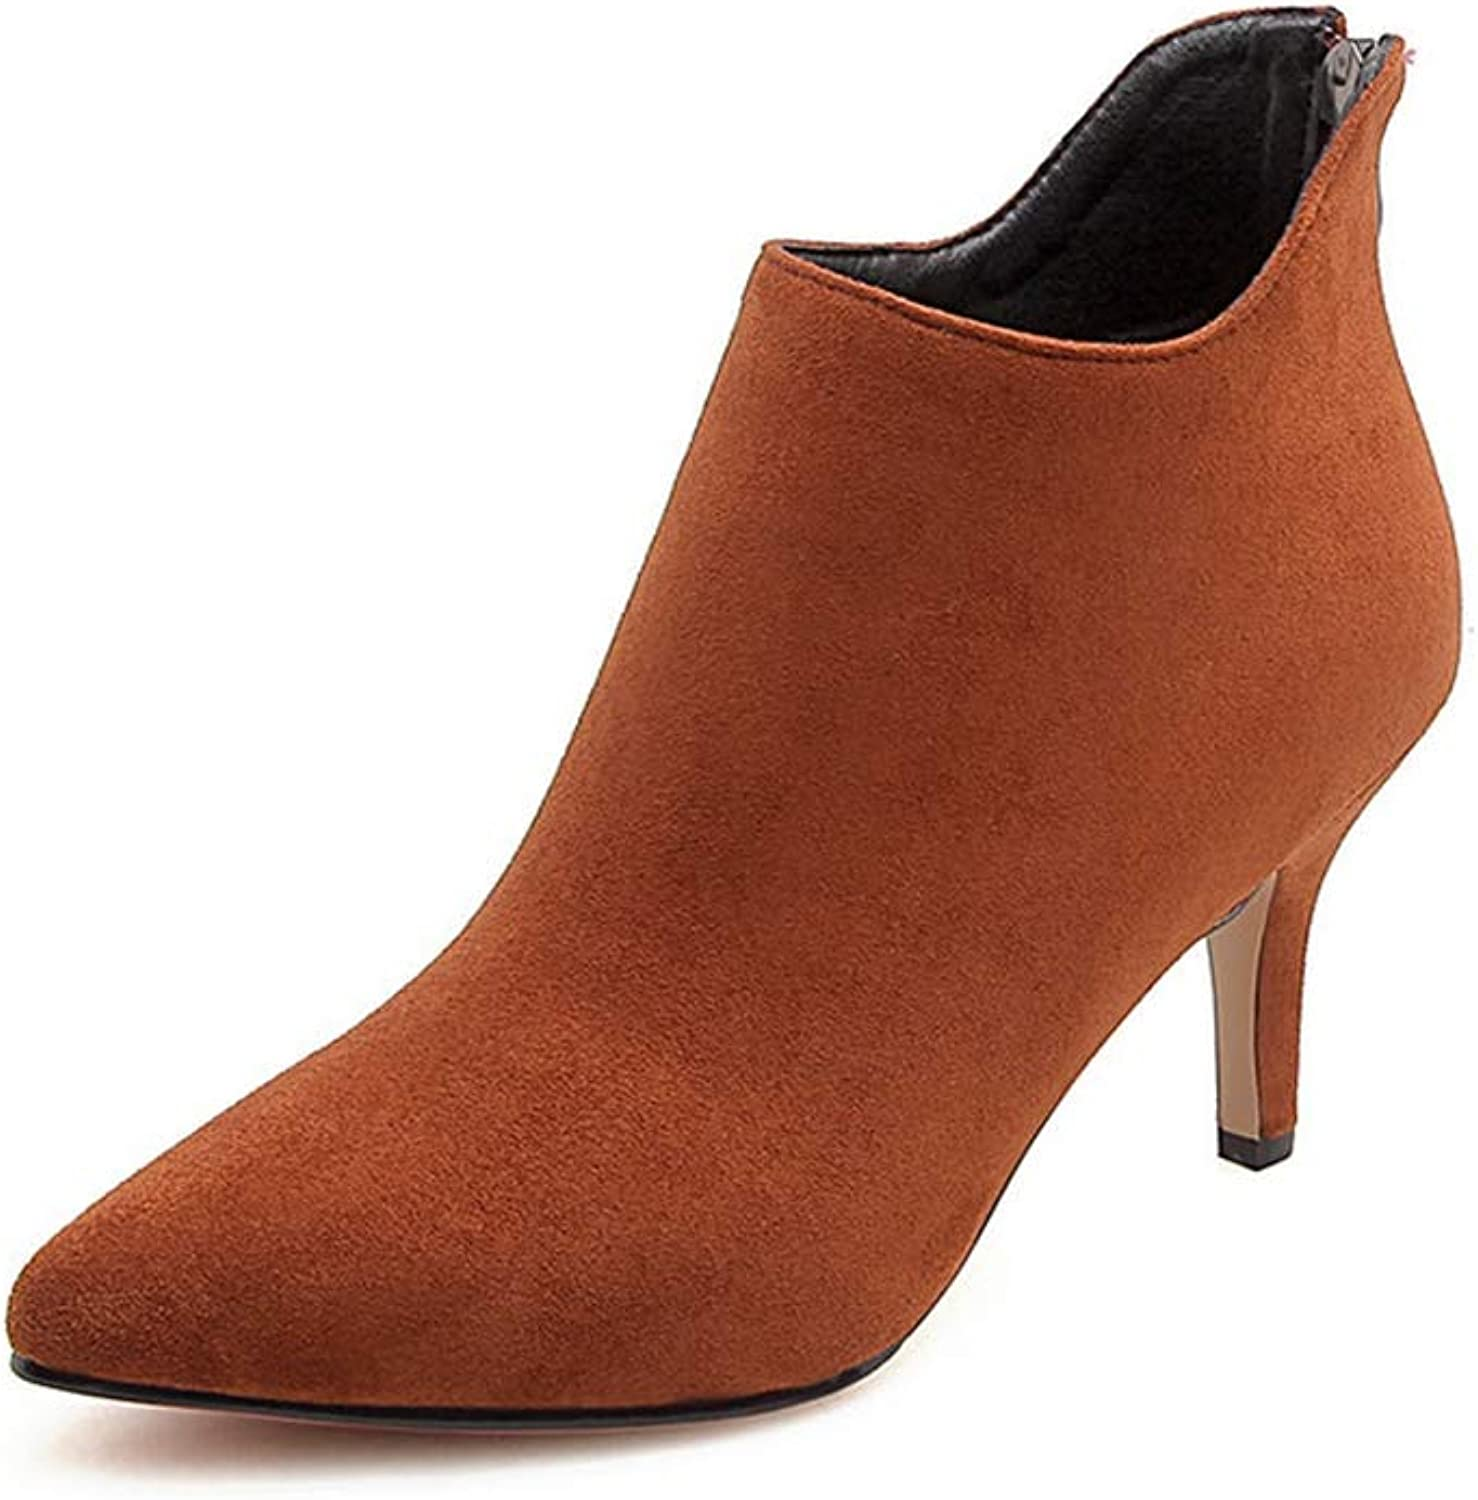 GIY Womens Pointed Toe Thin High Heels Ankle Boots Ladies Suede Leather Side Zipper Slip On Dress Pump Boots